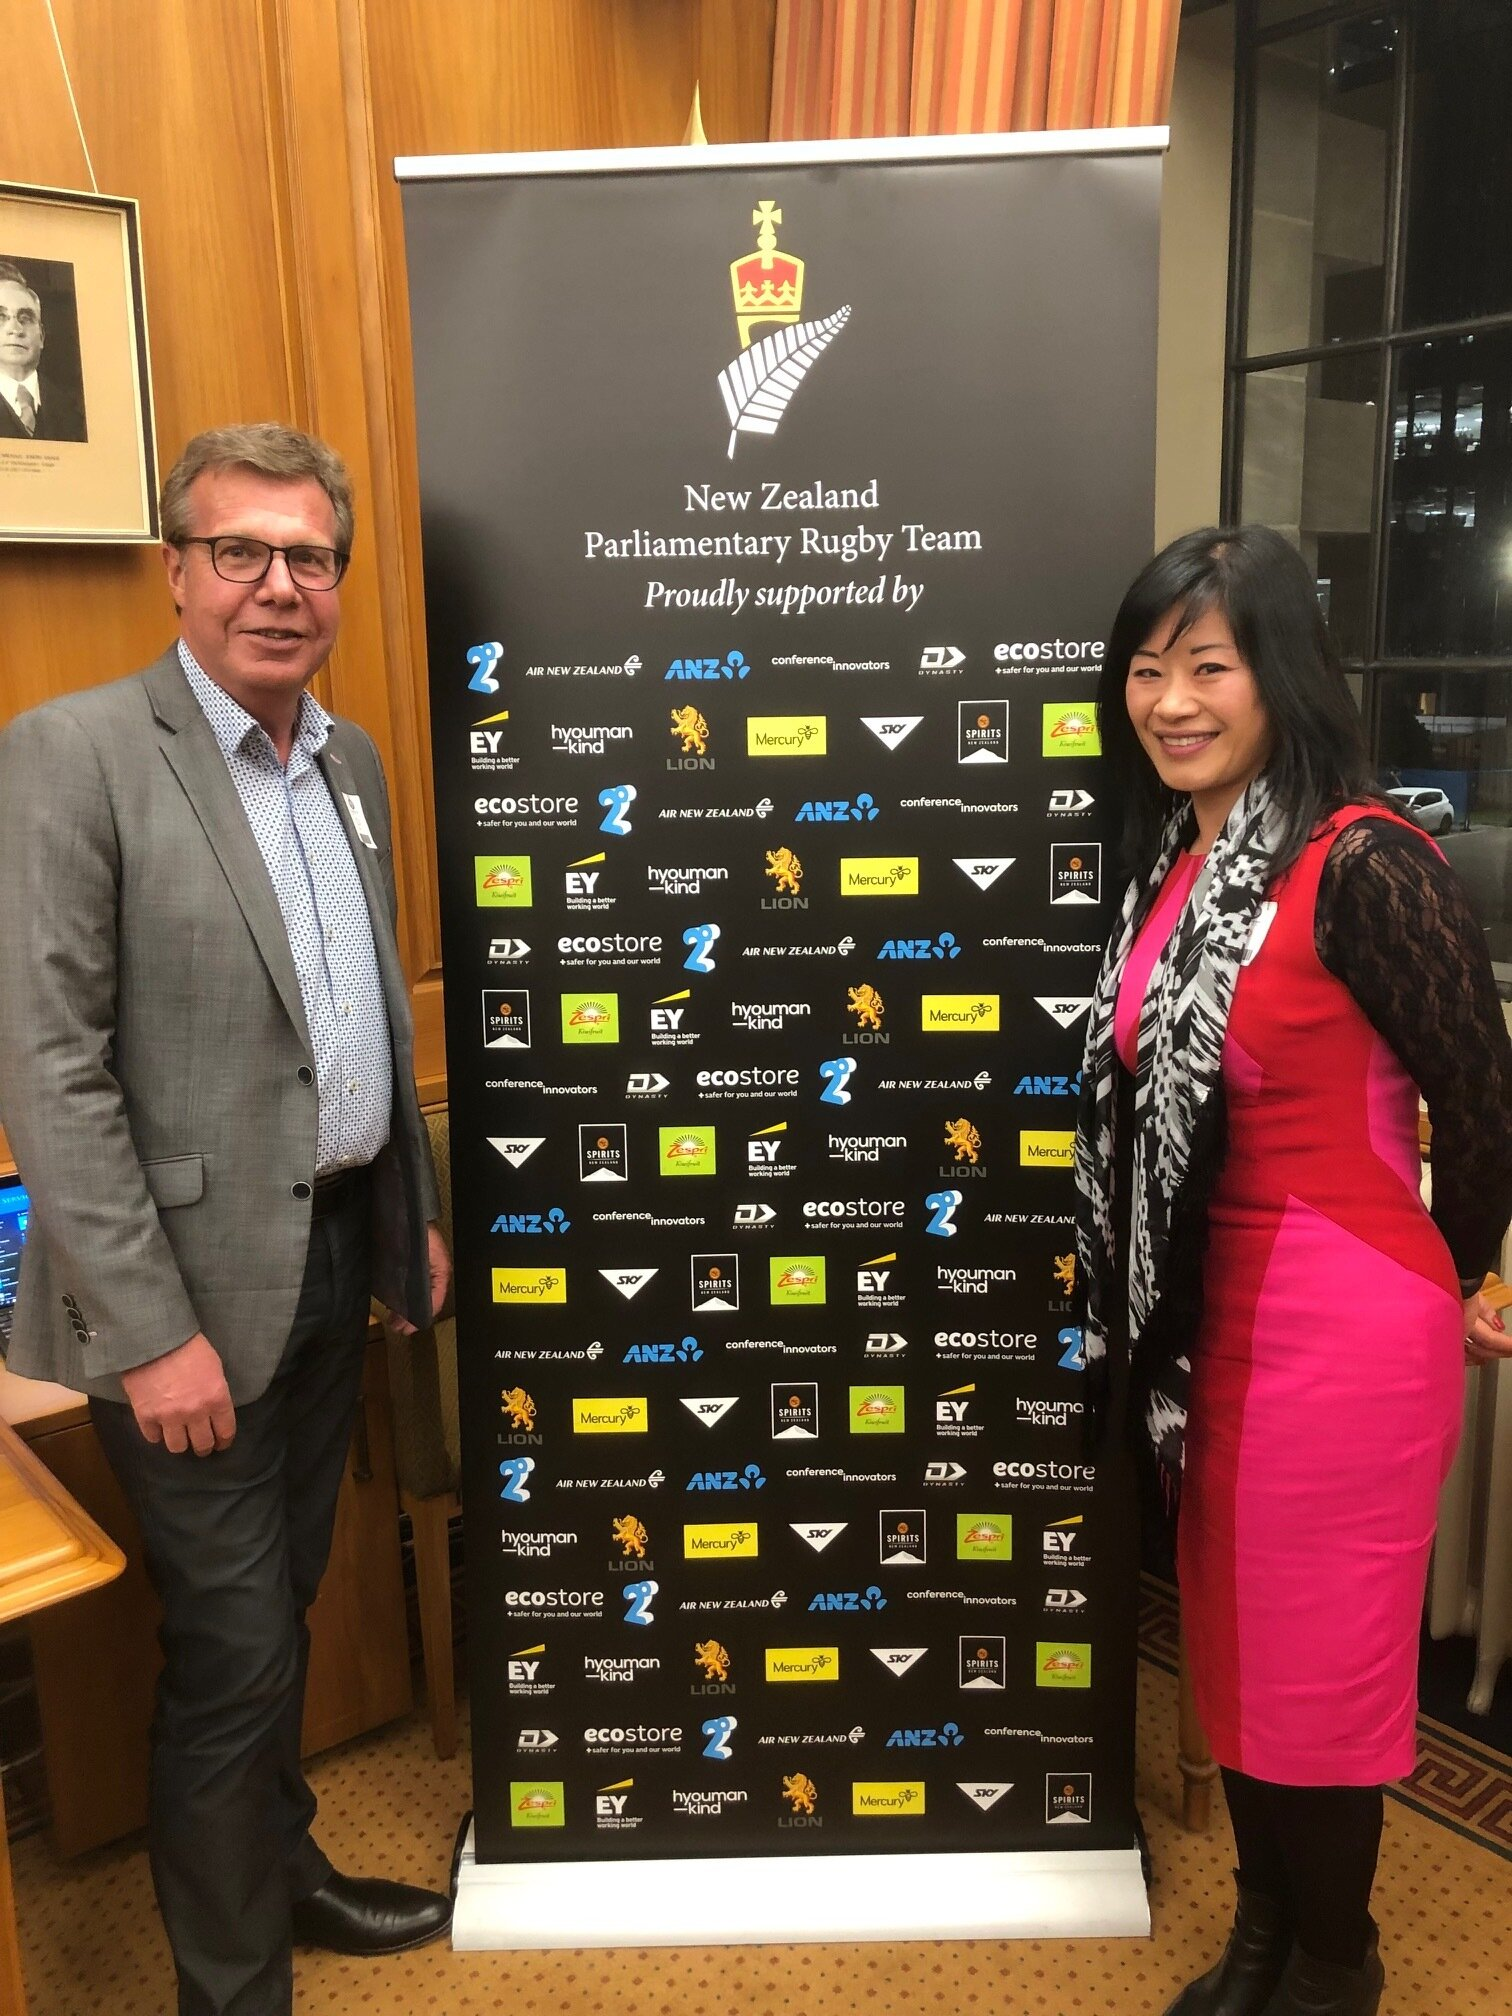 CI Director Tracey Thomas and Wellington Manager Raewyn Tse at the NZPRT farewell at Parliament